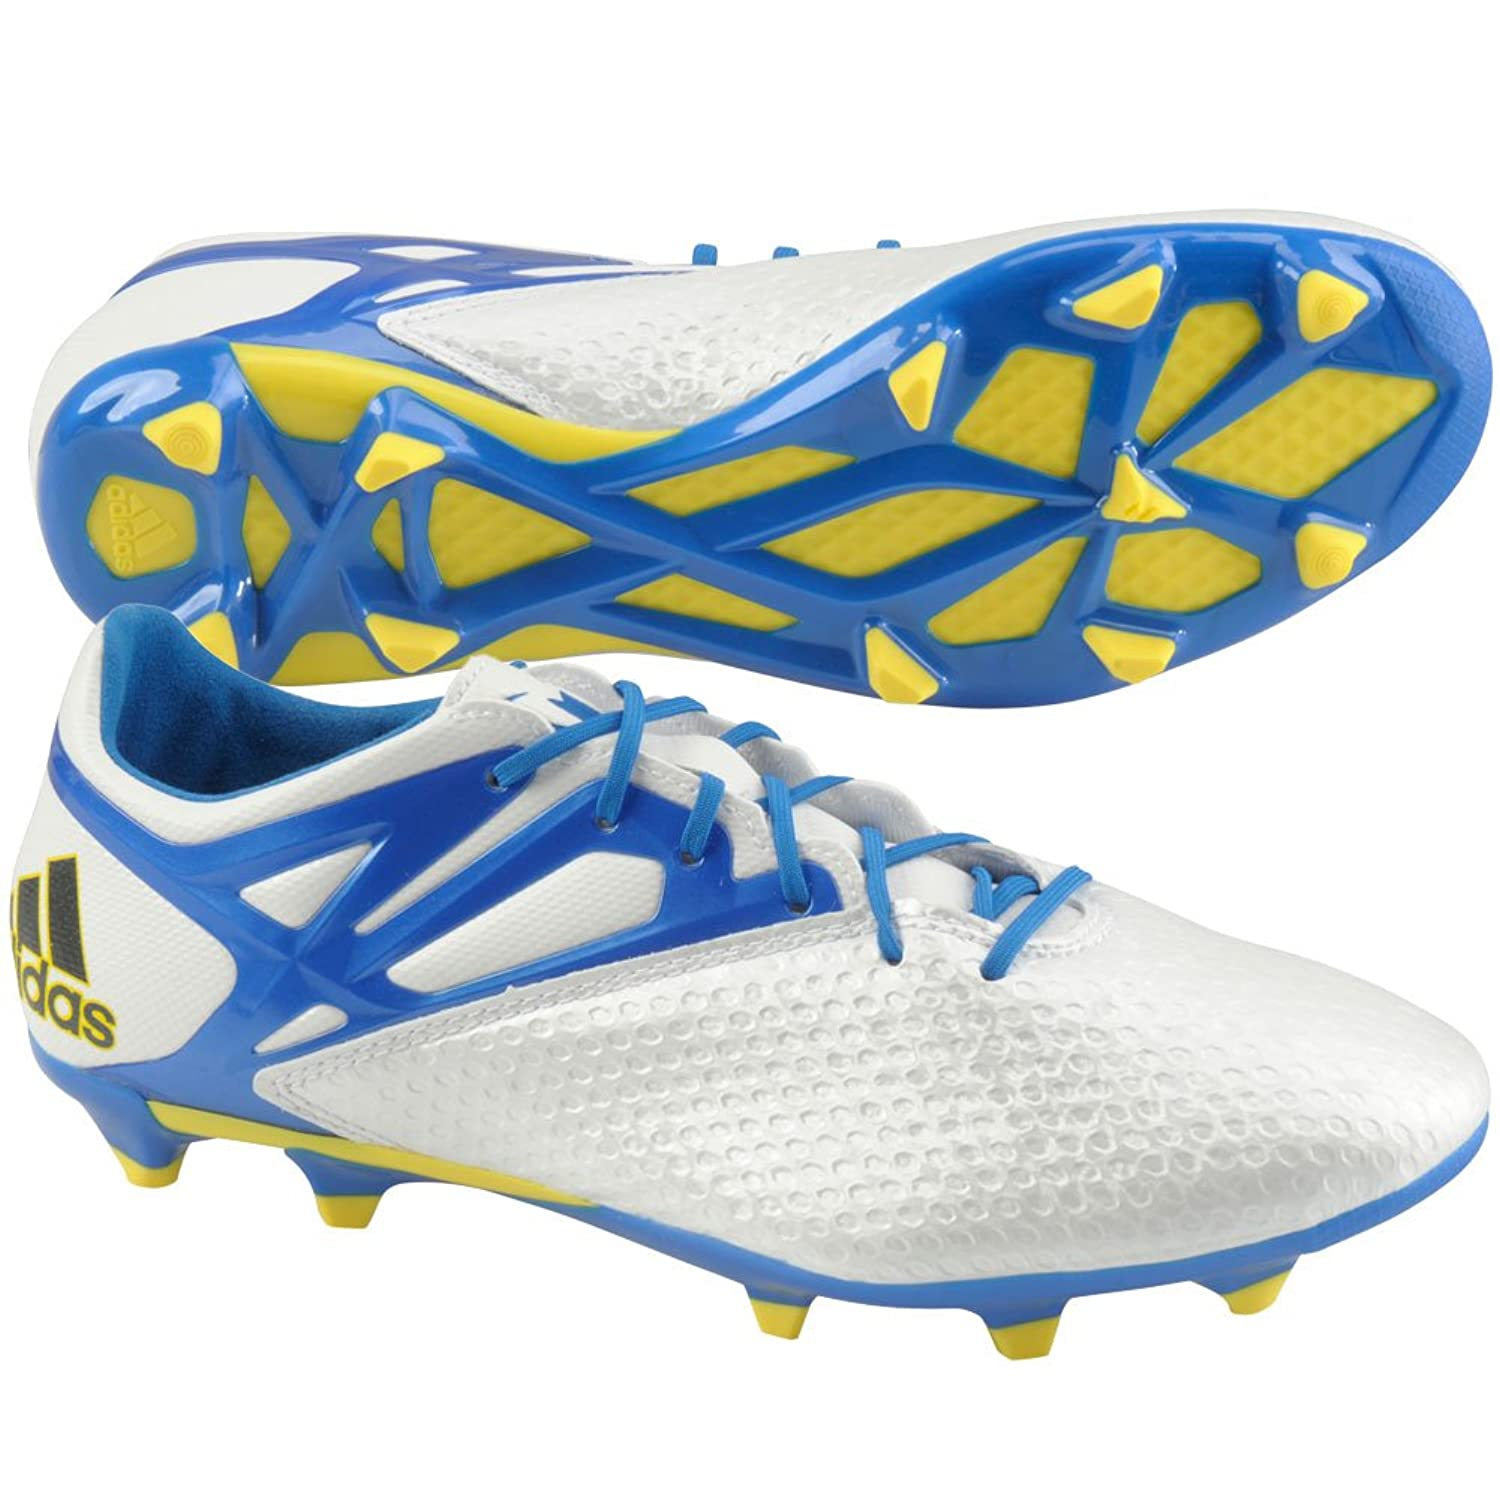 adidas mens soccer cleats on sale